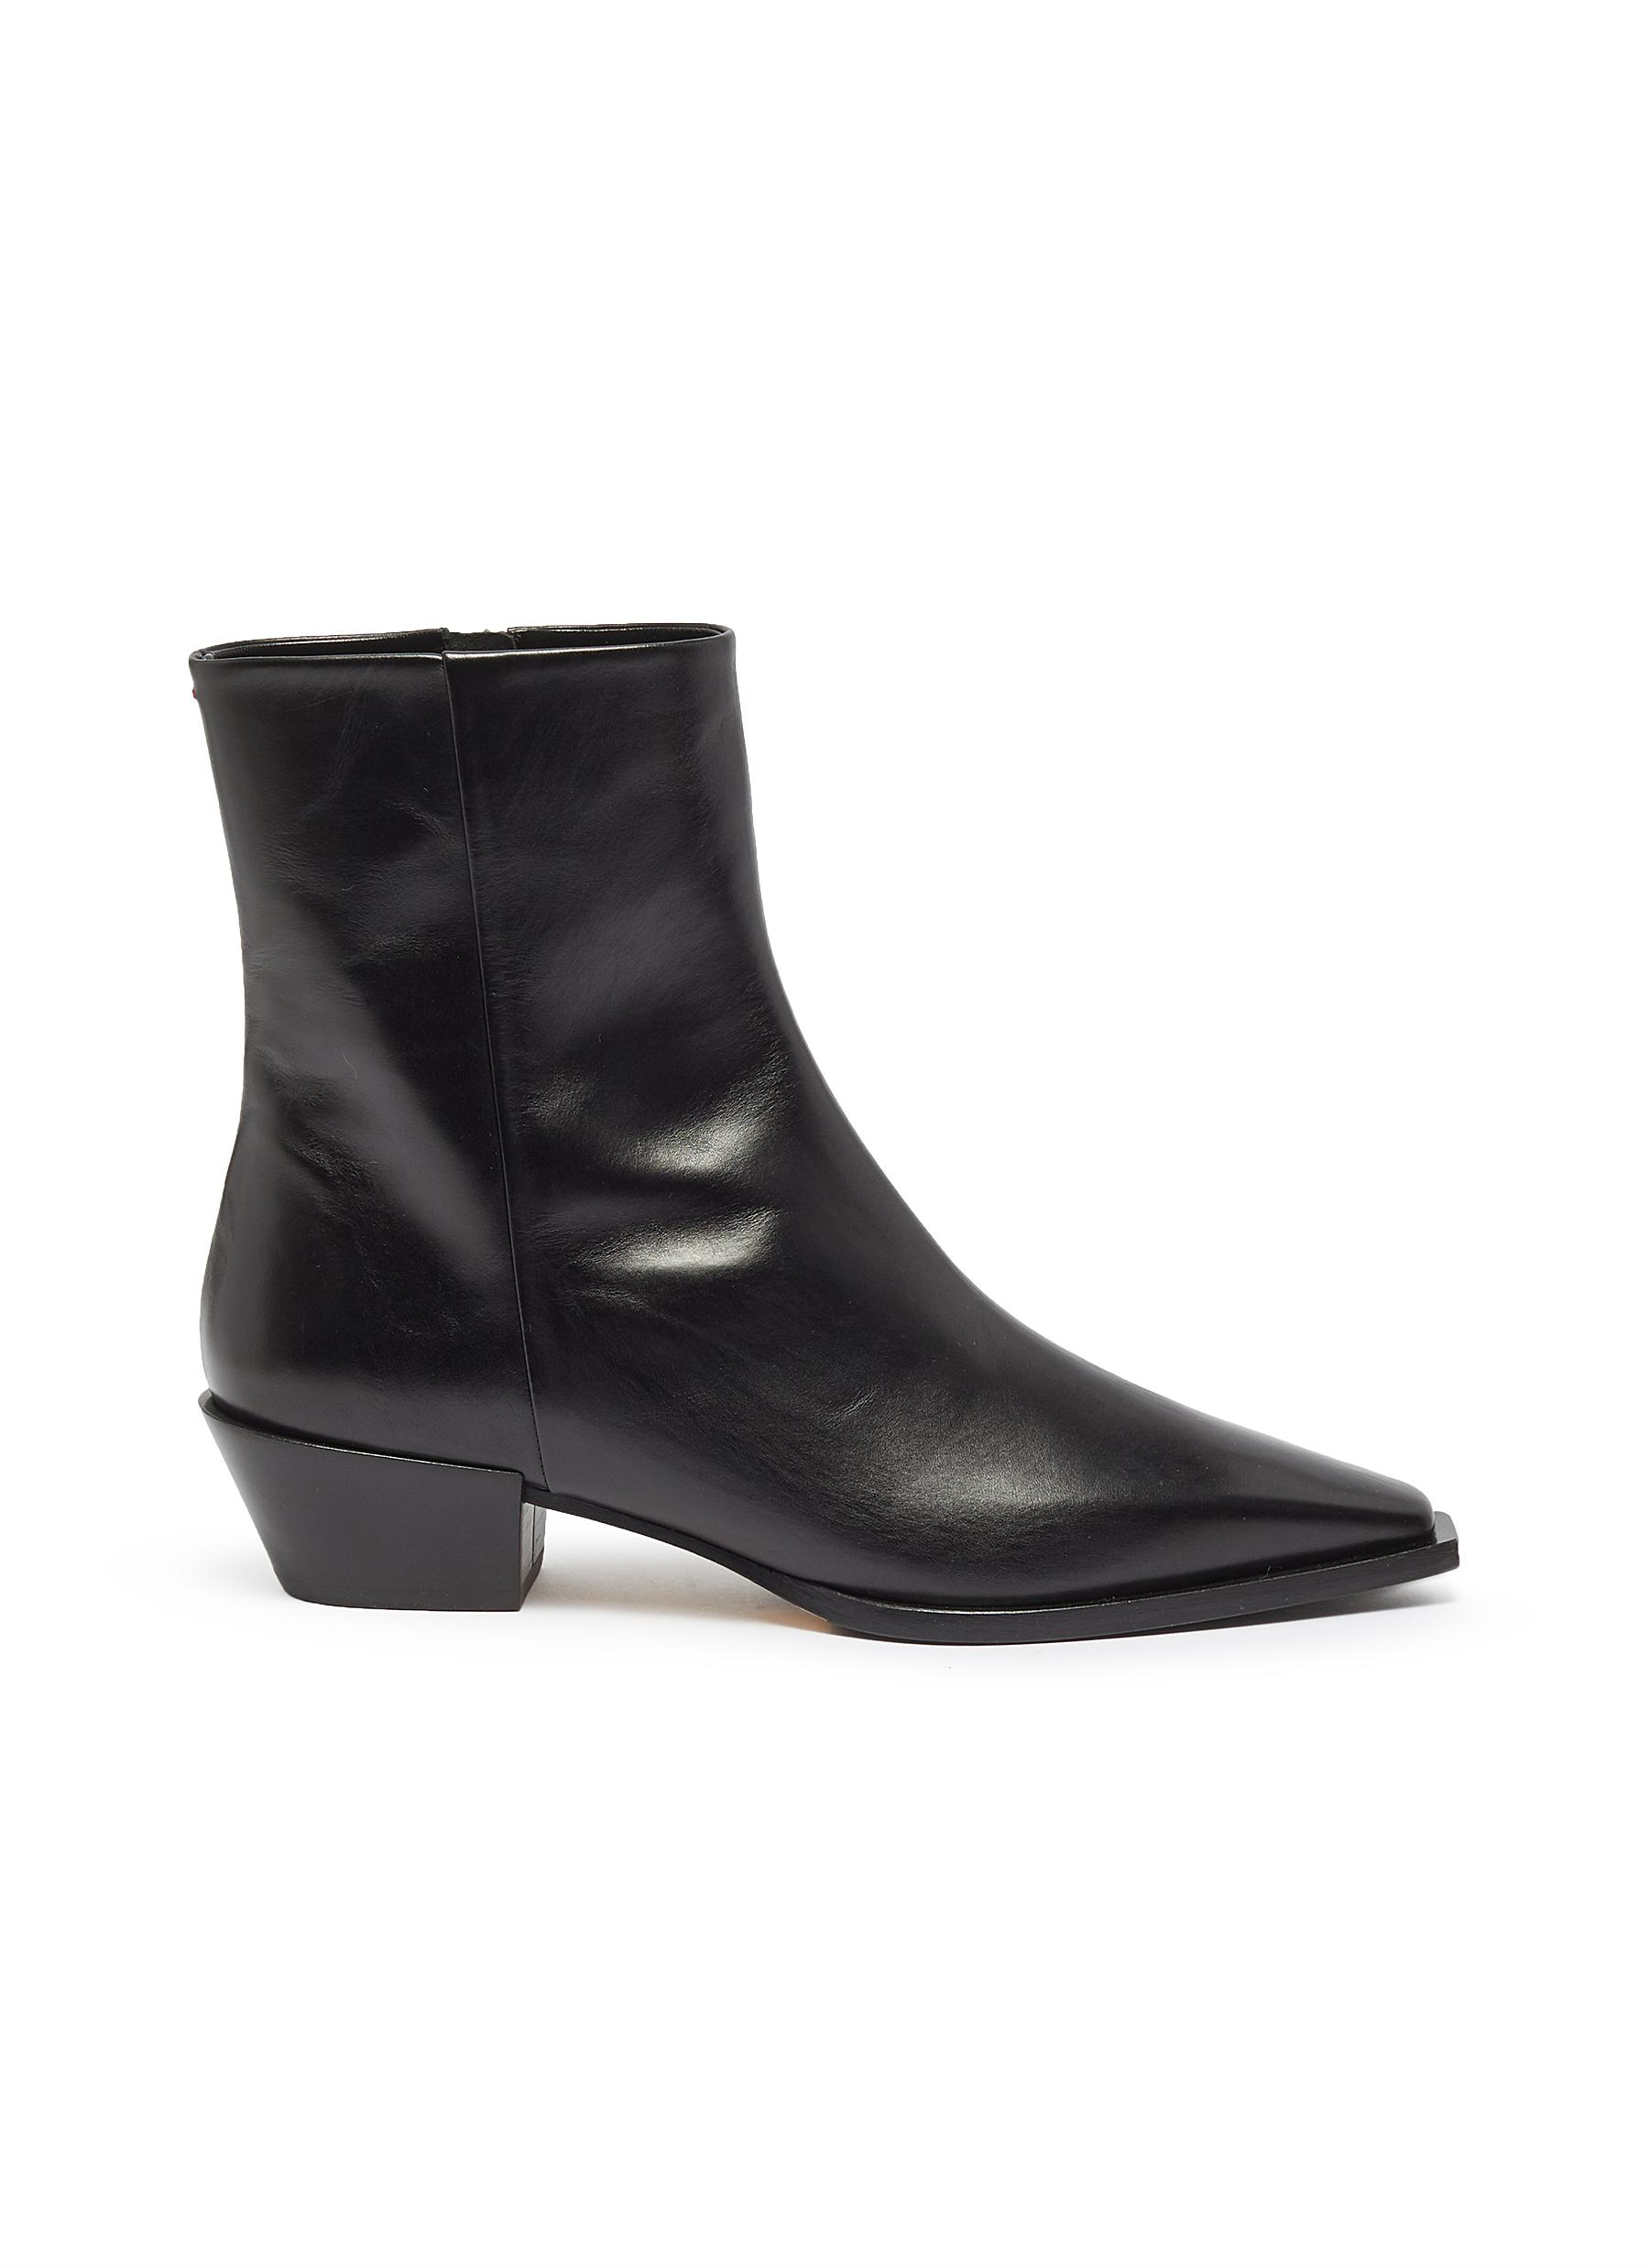 Ruby leather ankle boots by Aeyde